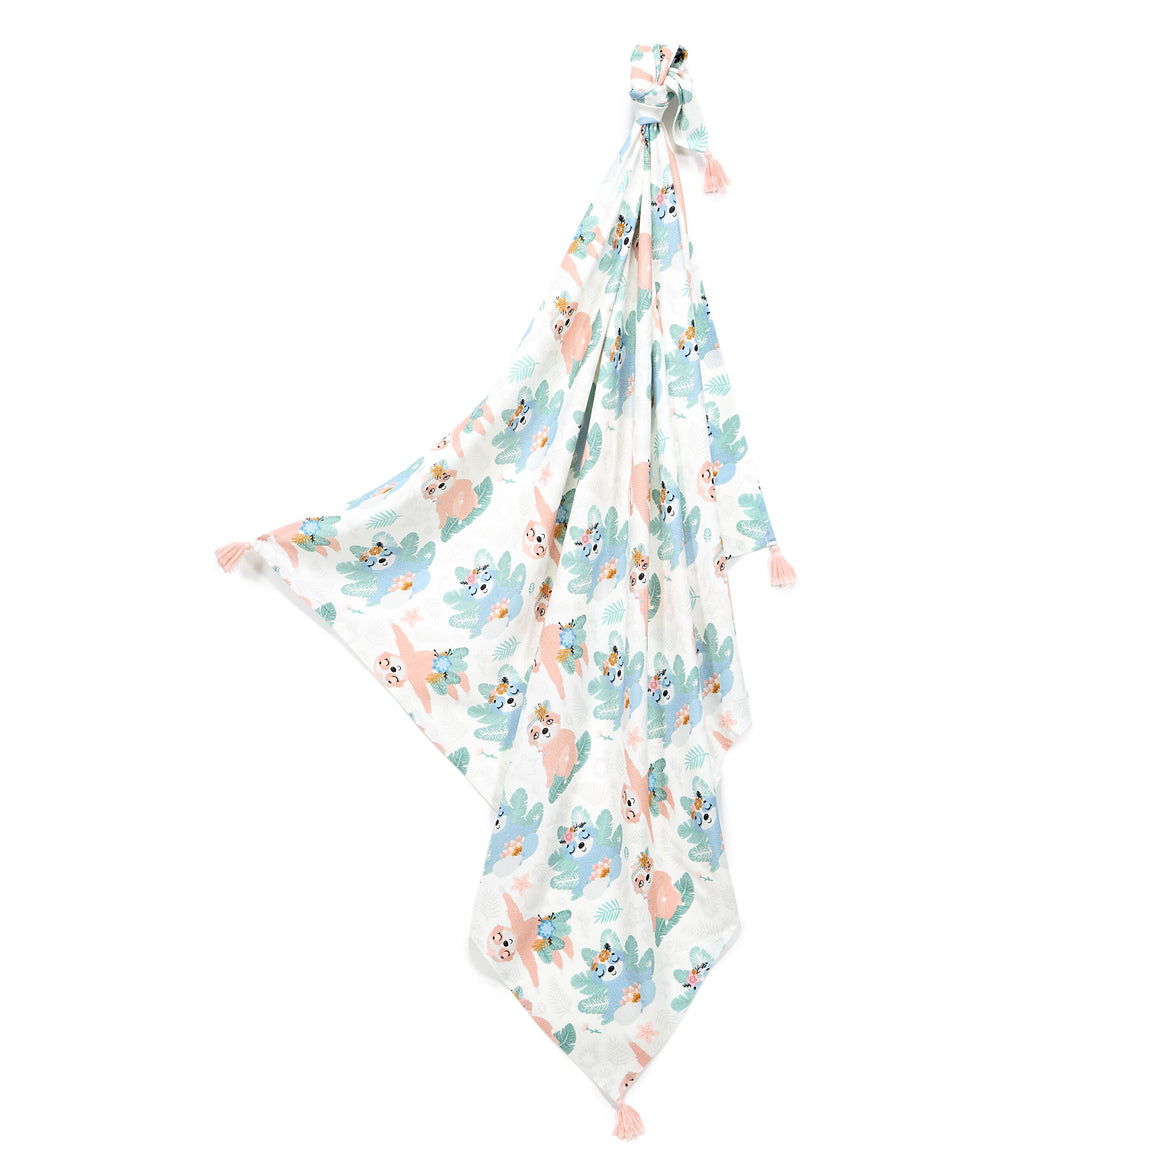 BAMBOO SWADDLE FRINGE light summer blanket - Yoga Candy Sloths